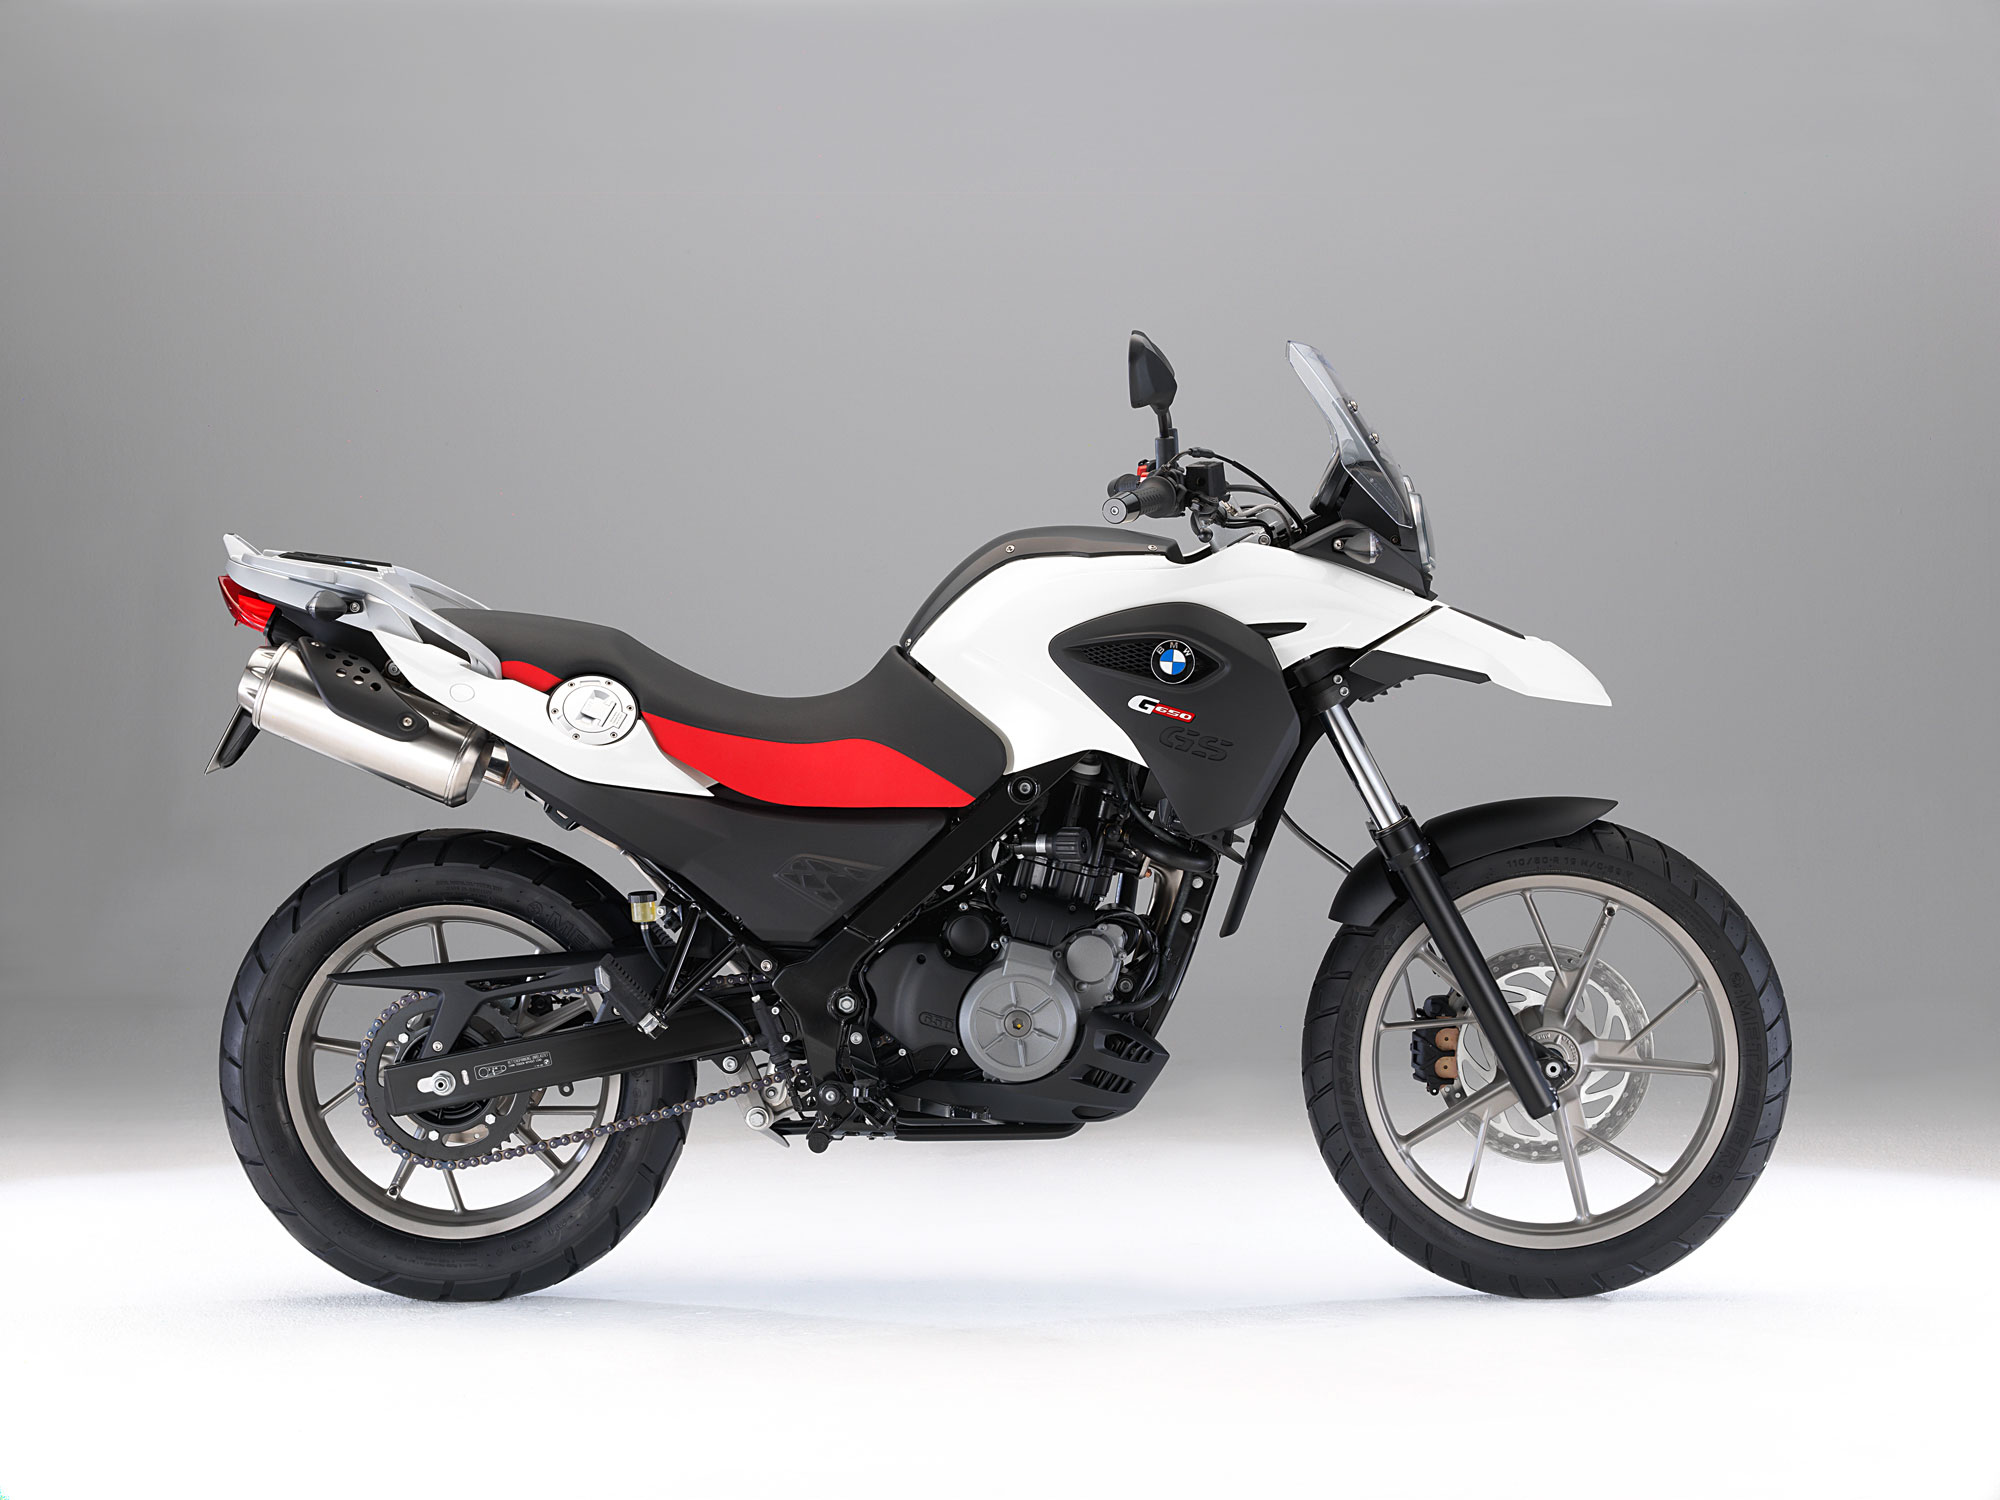 2012 BMW G650GS Review